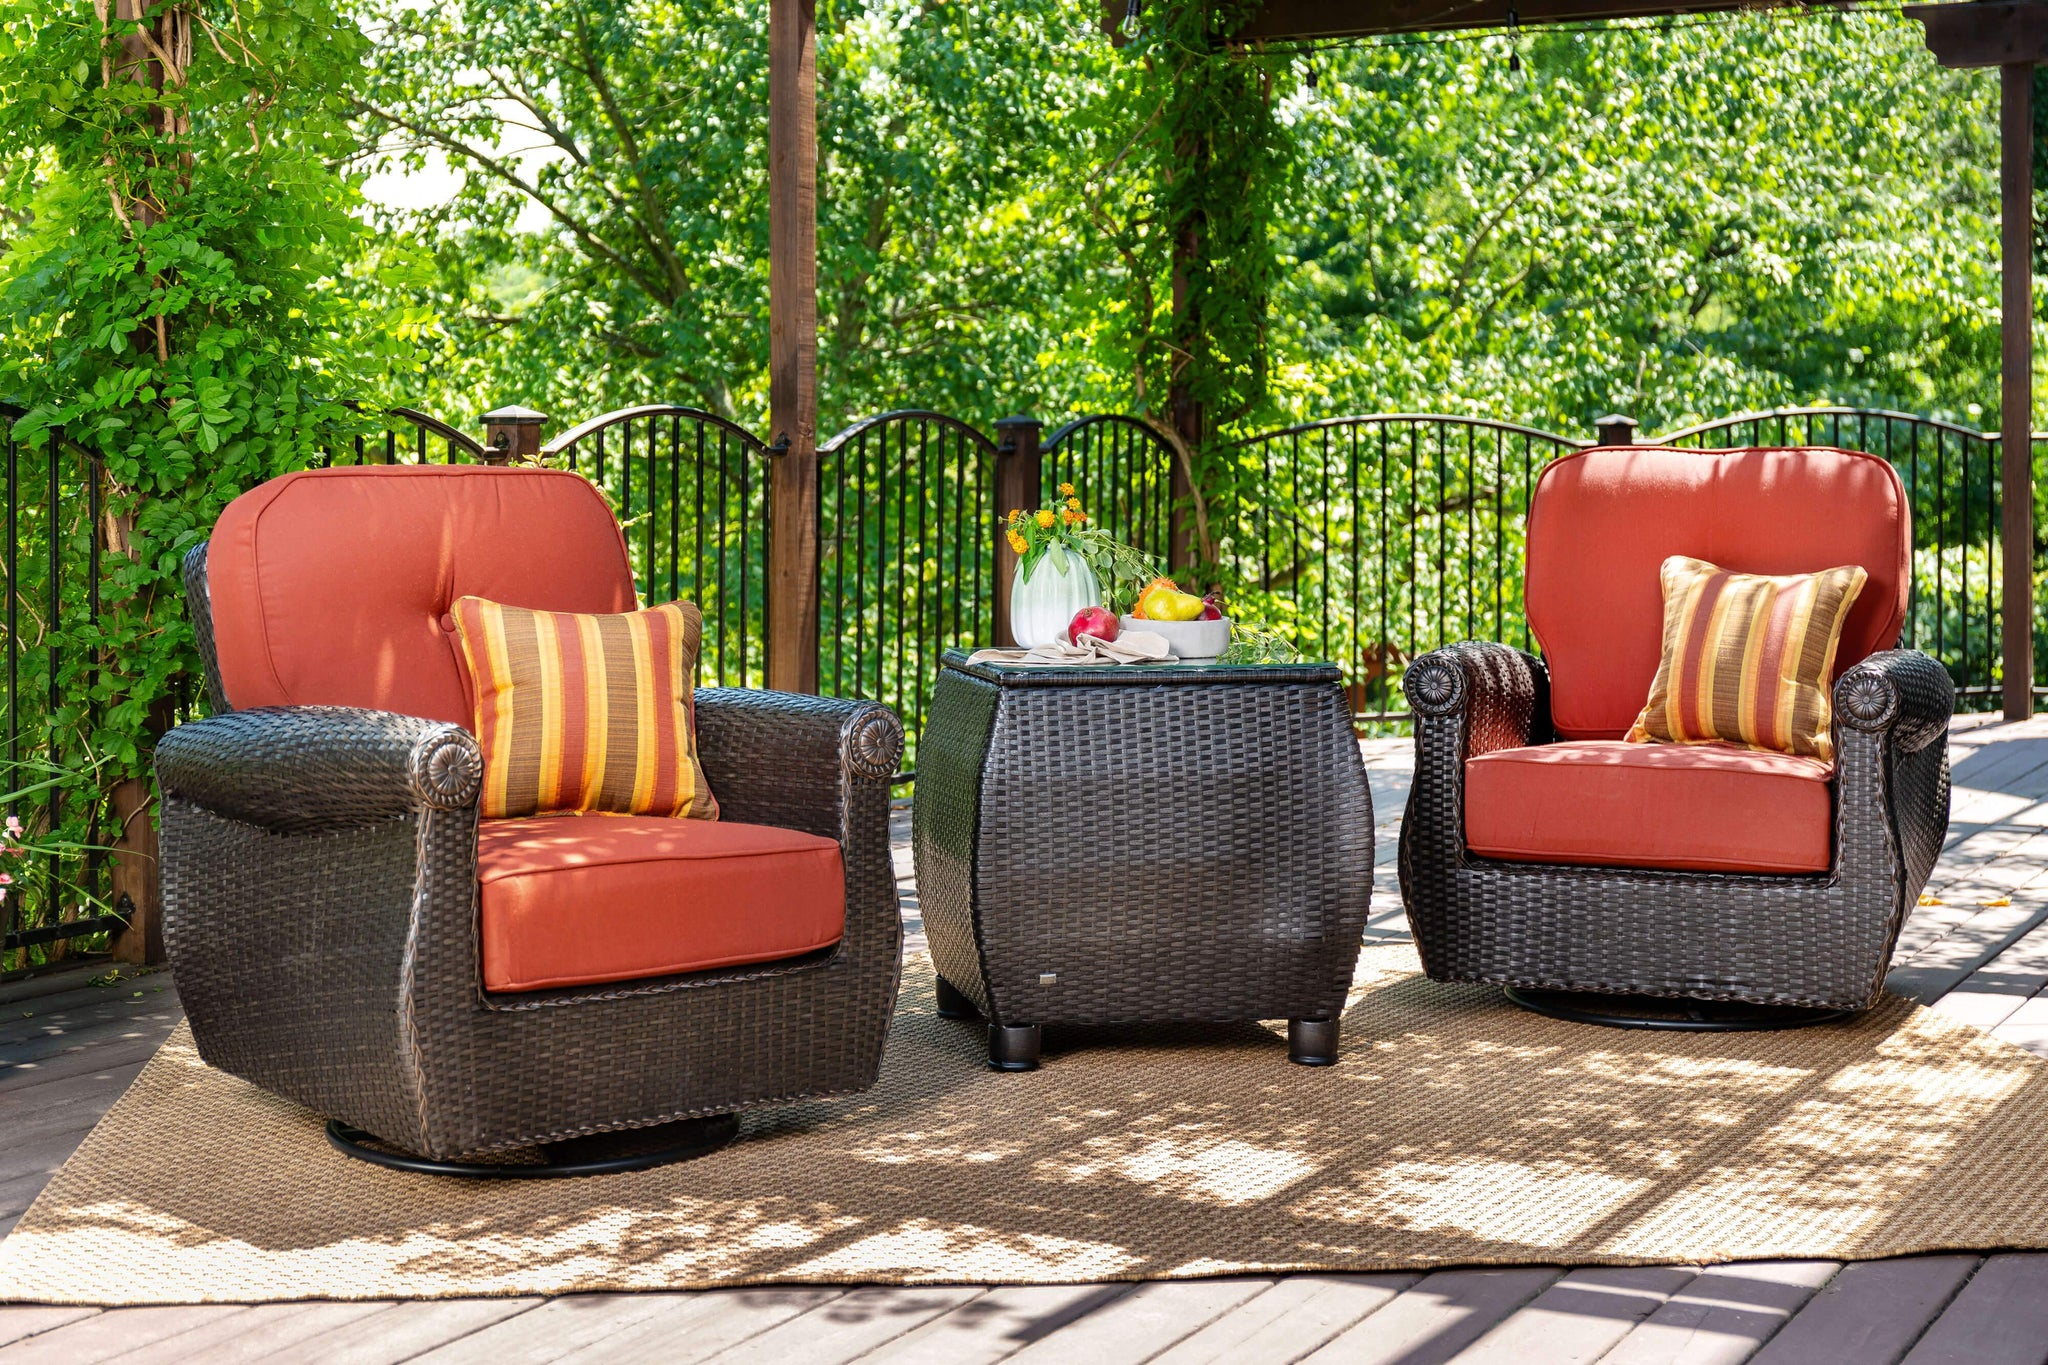 Breckenridge 3 piece patio furniture set 2 swivel rockers brick red and side table